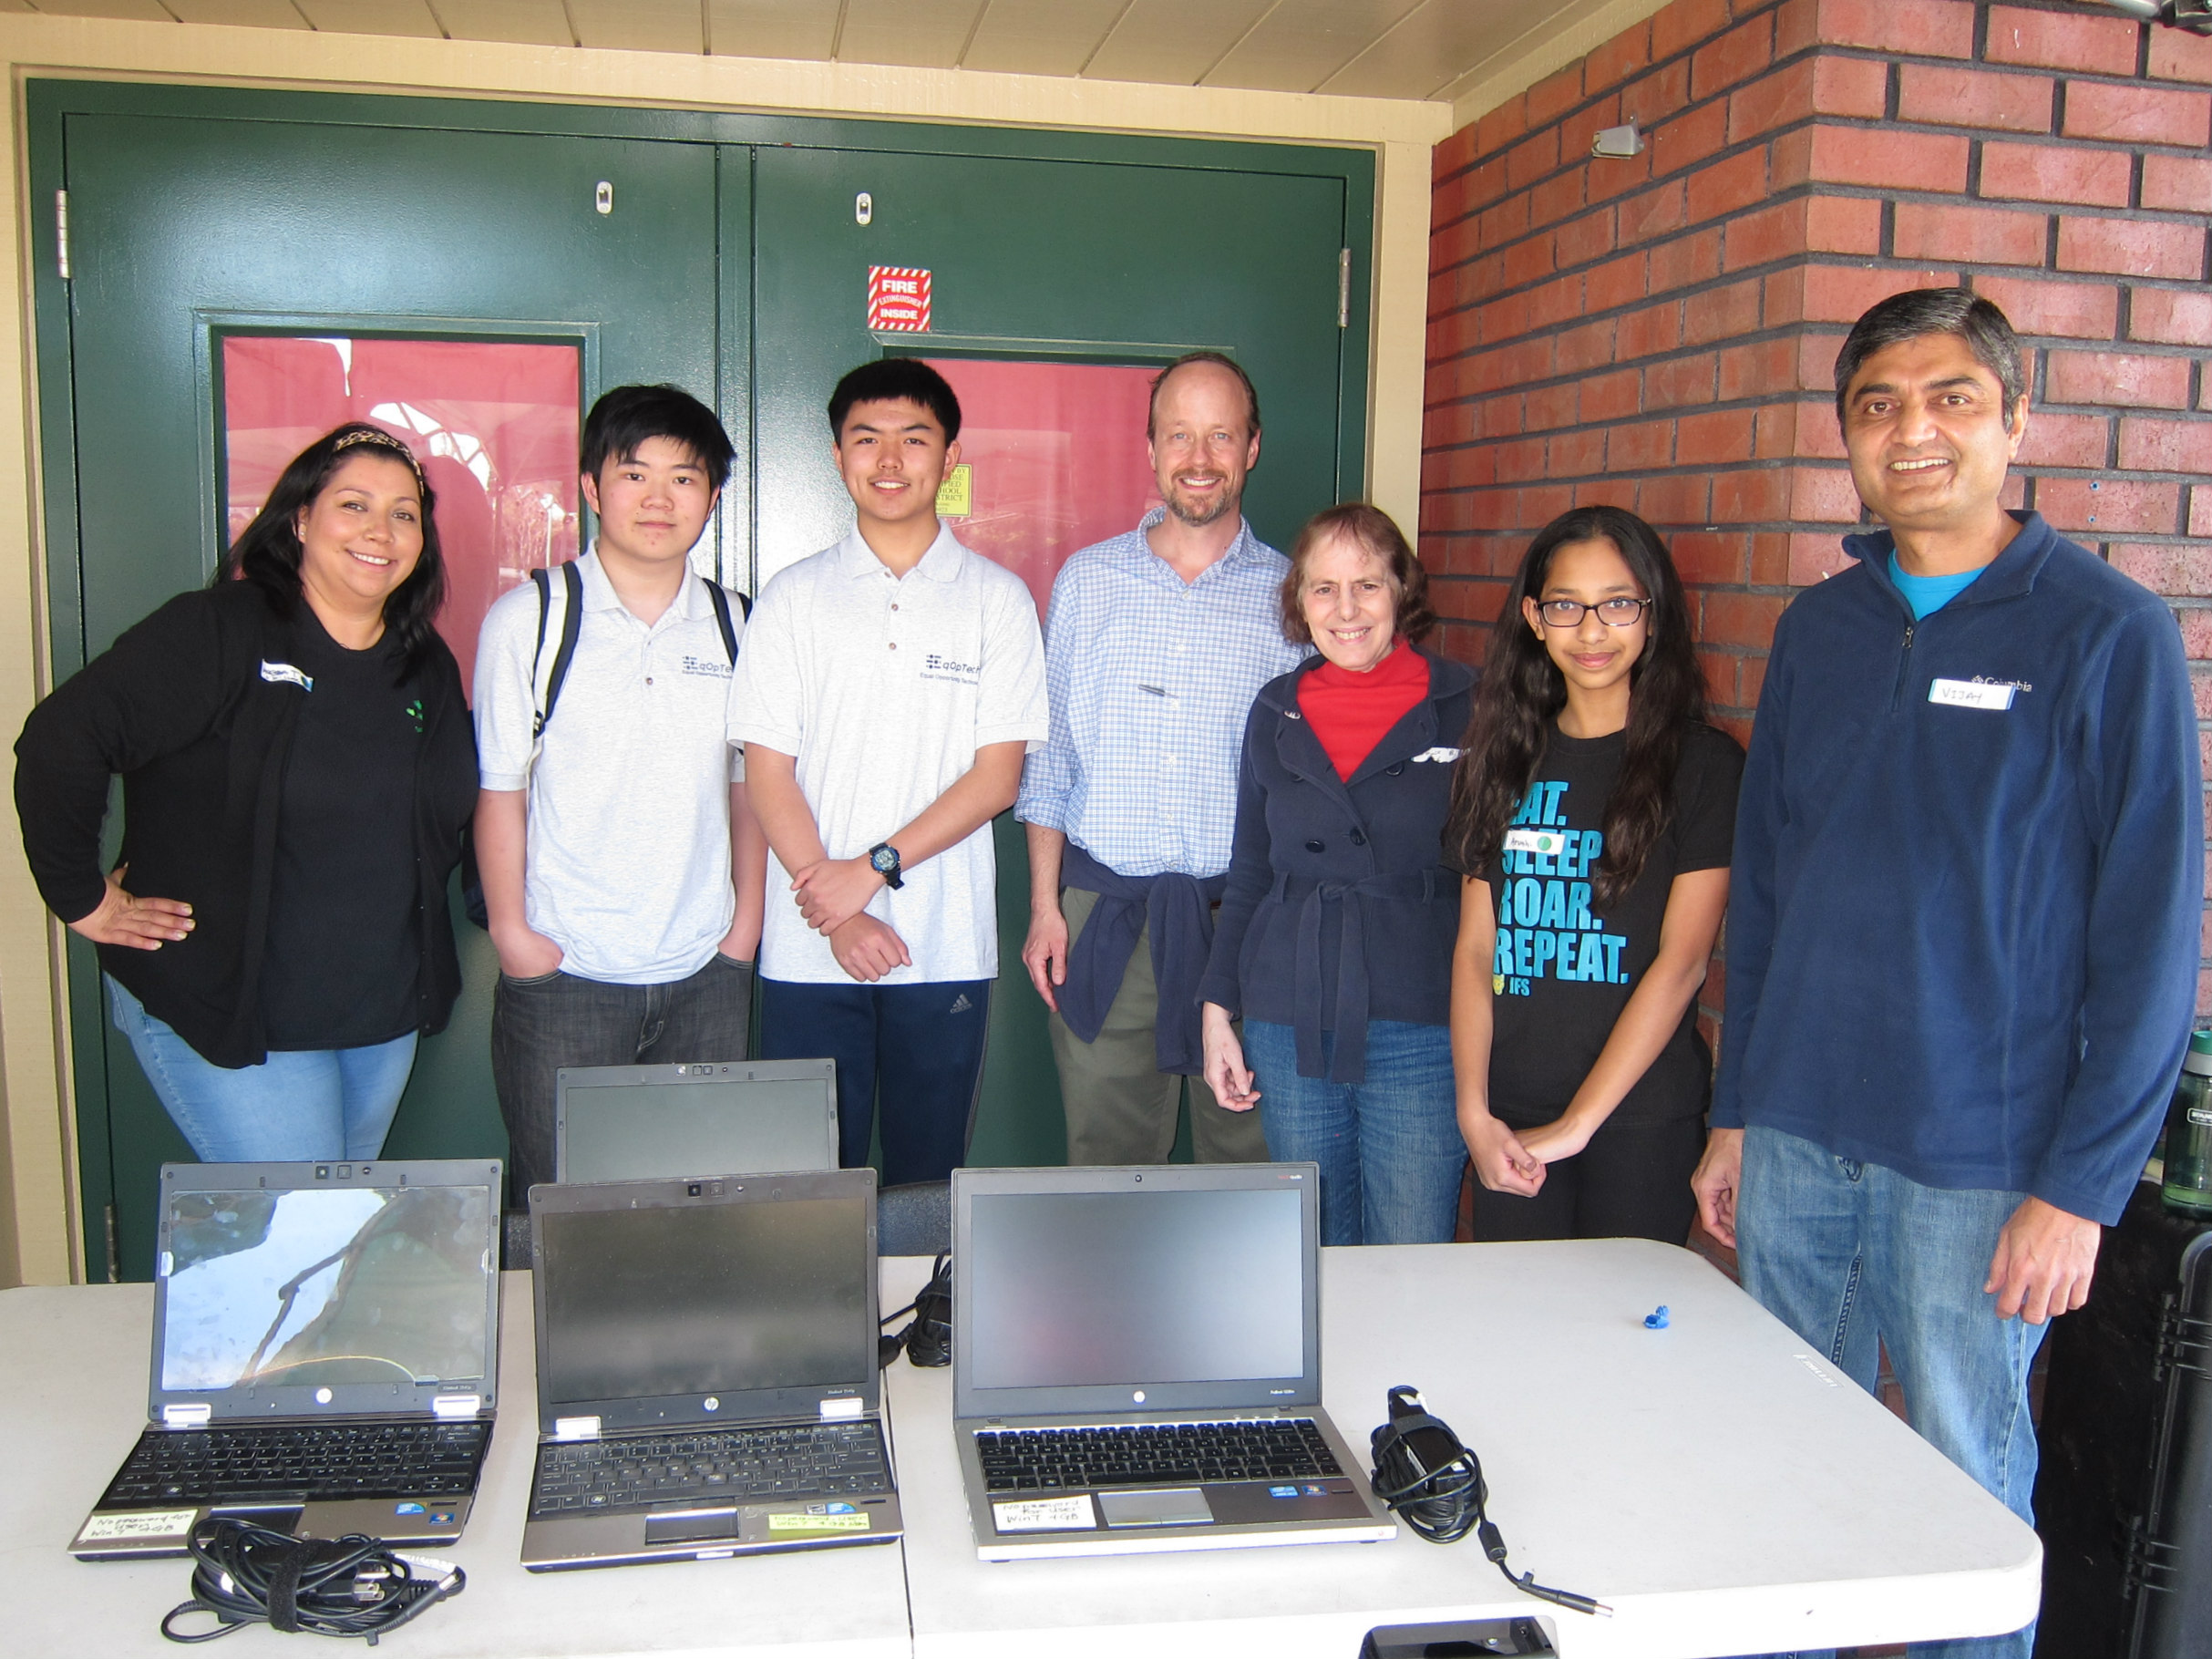 Vanessa Torres (left to right), Terence Lee, Kevin Gao, James McCaskill, Janis Baron, Arushi Goyal, Vijay Talati